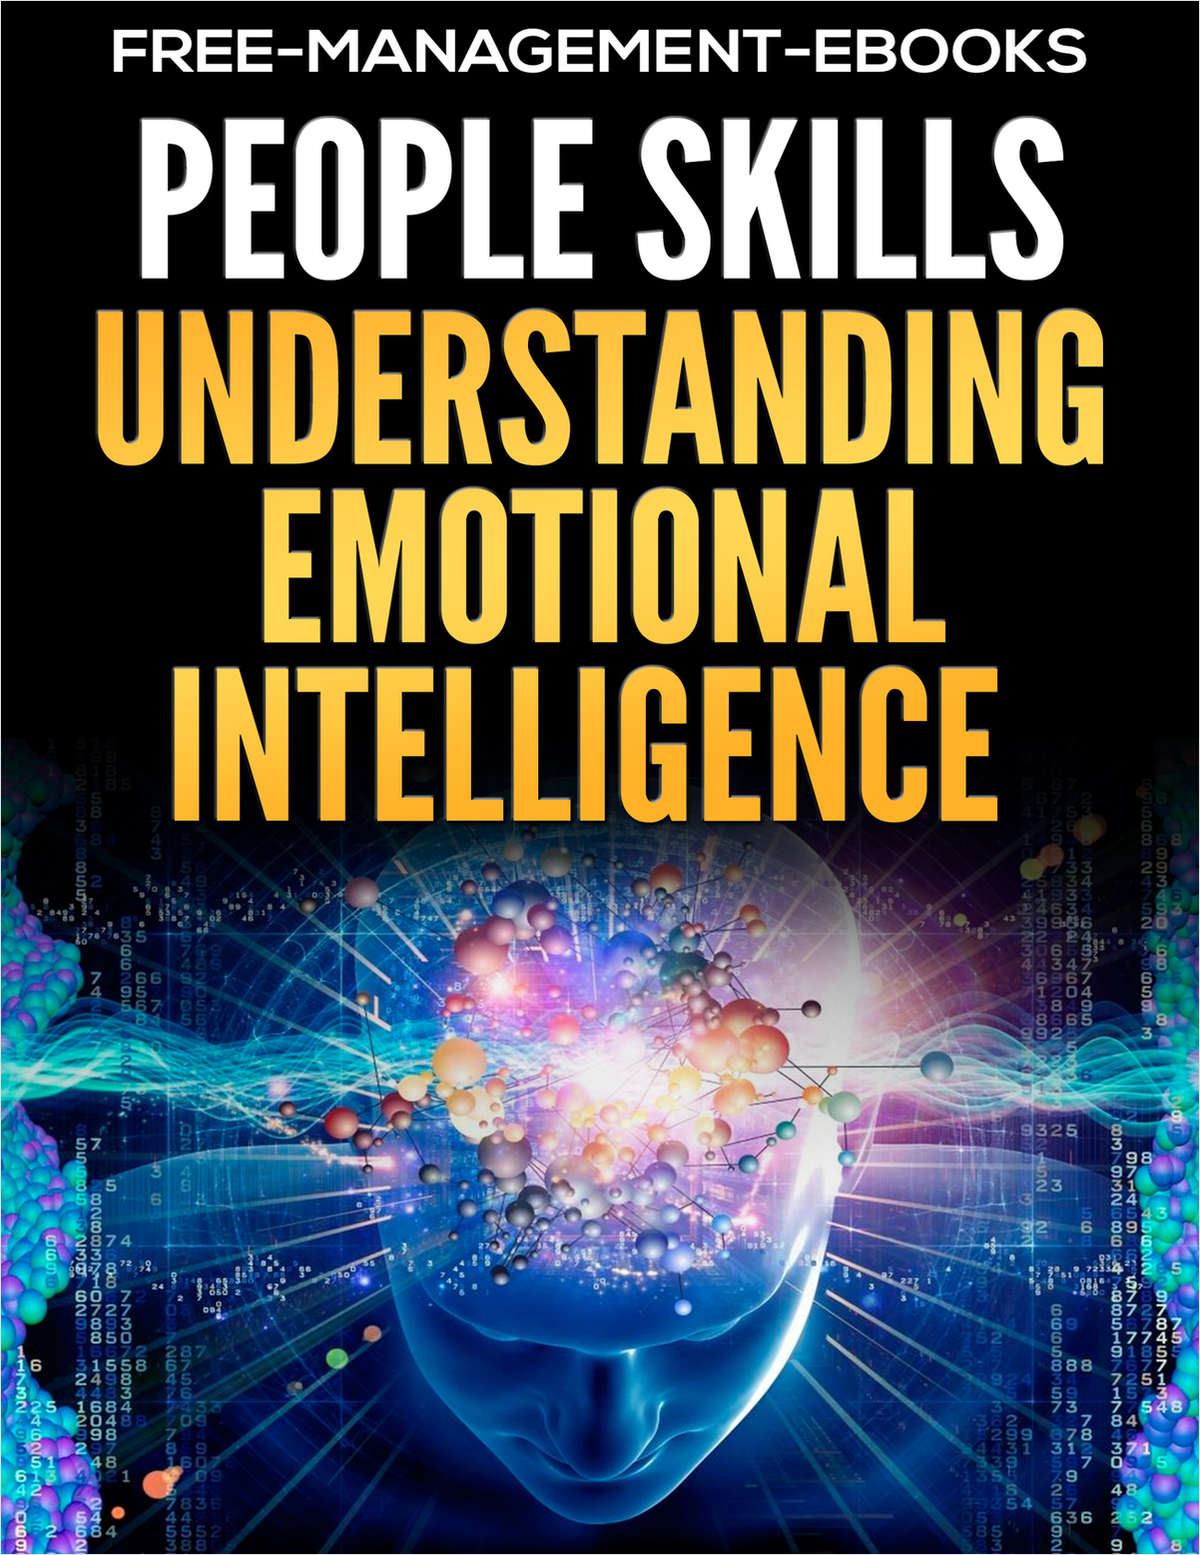 Understanding Emotional Intelligence -- Developing Your People Skills